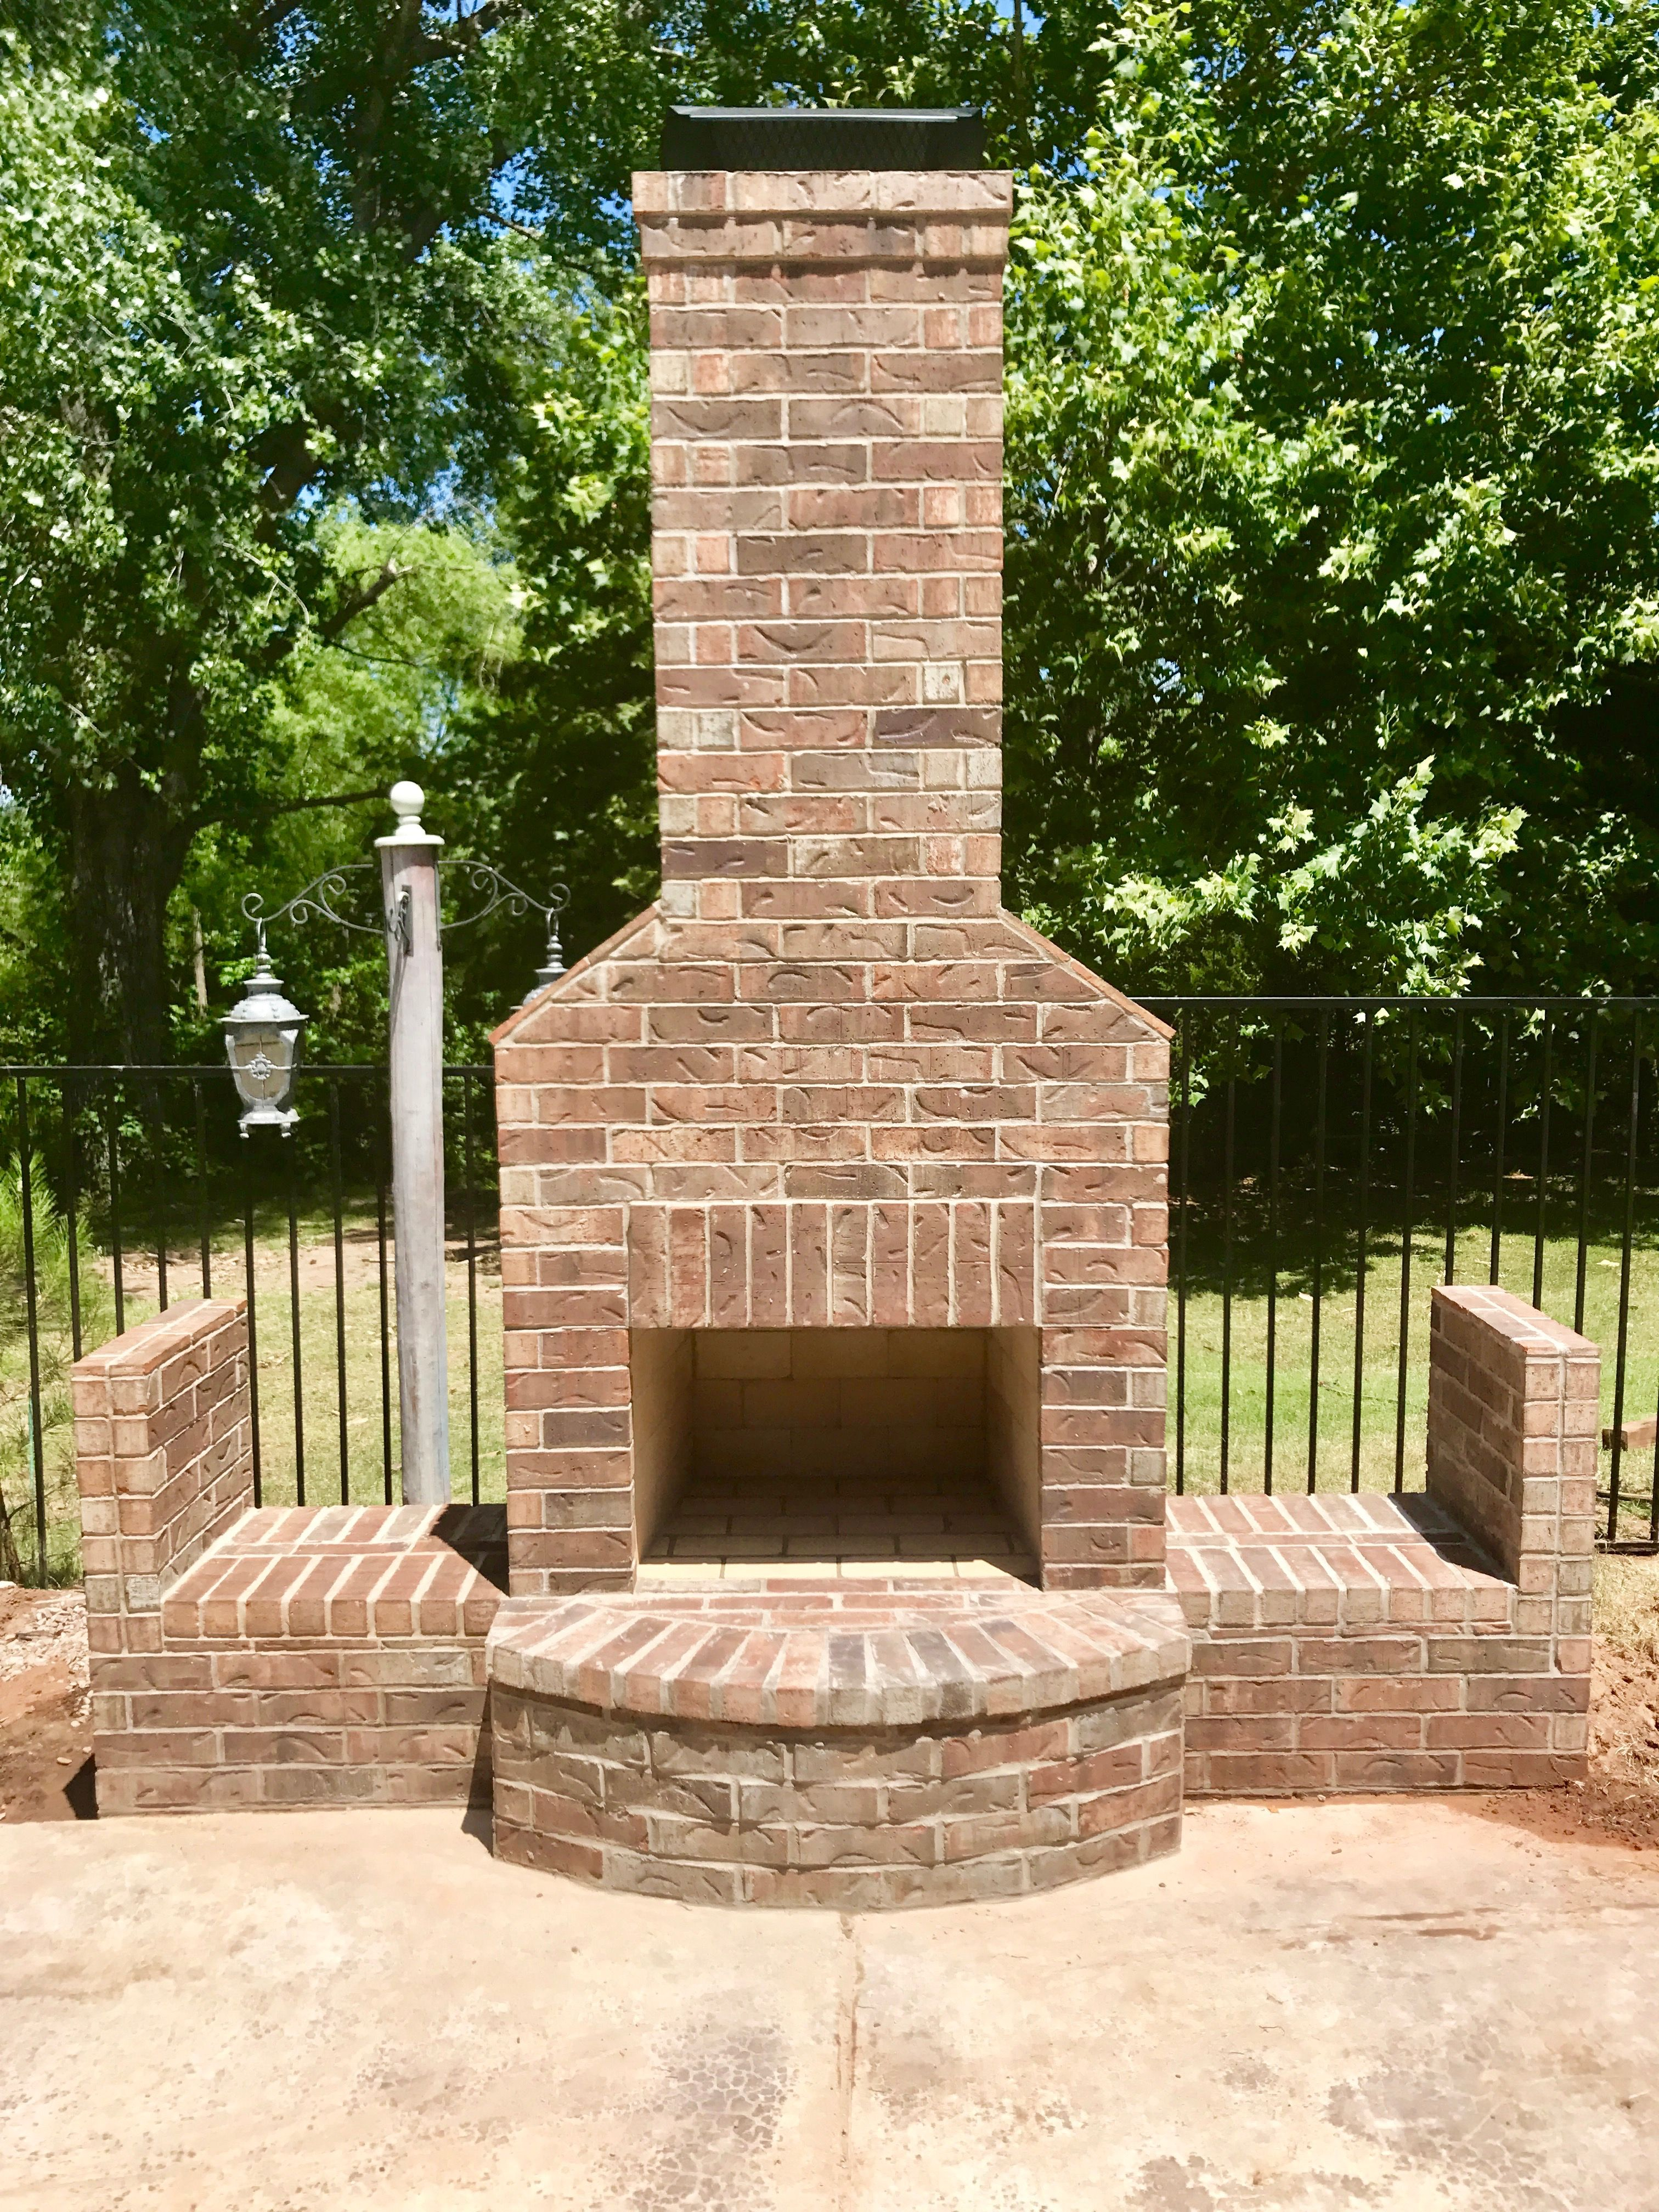 Pin by PMHOKC.com on Custom Outdoor Fireplaces (With ... on Simple Outdoor Brick Fireplace id=55308